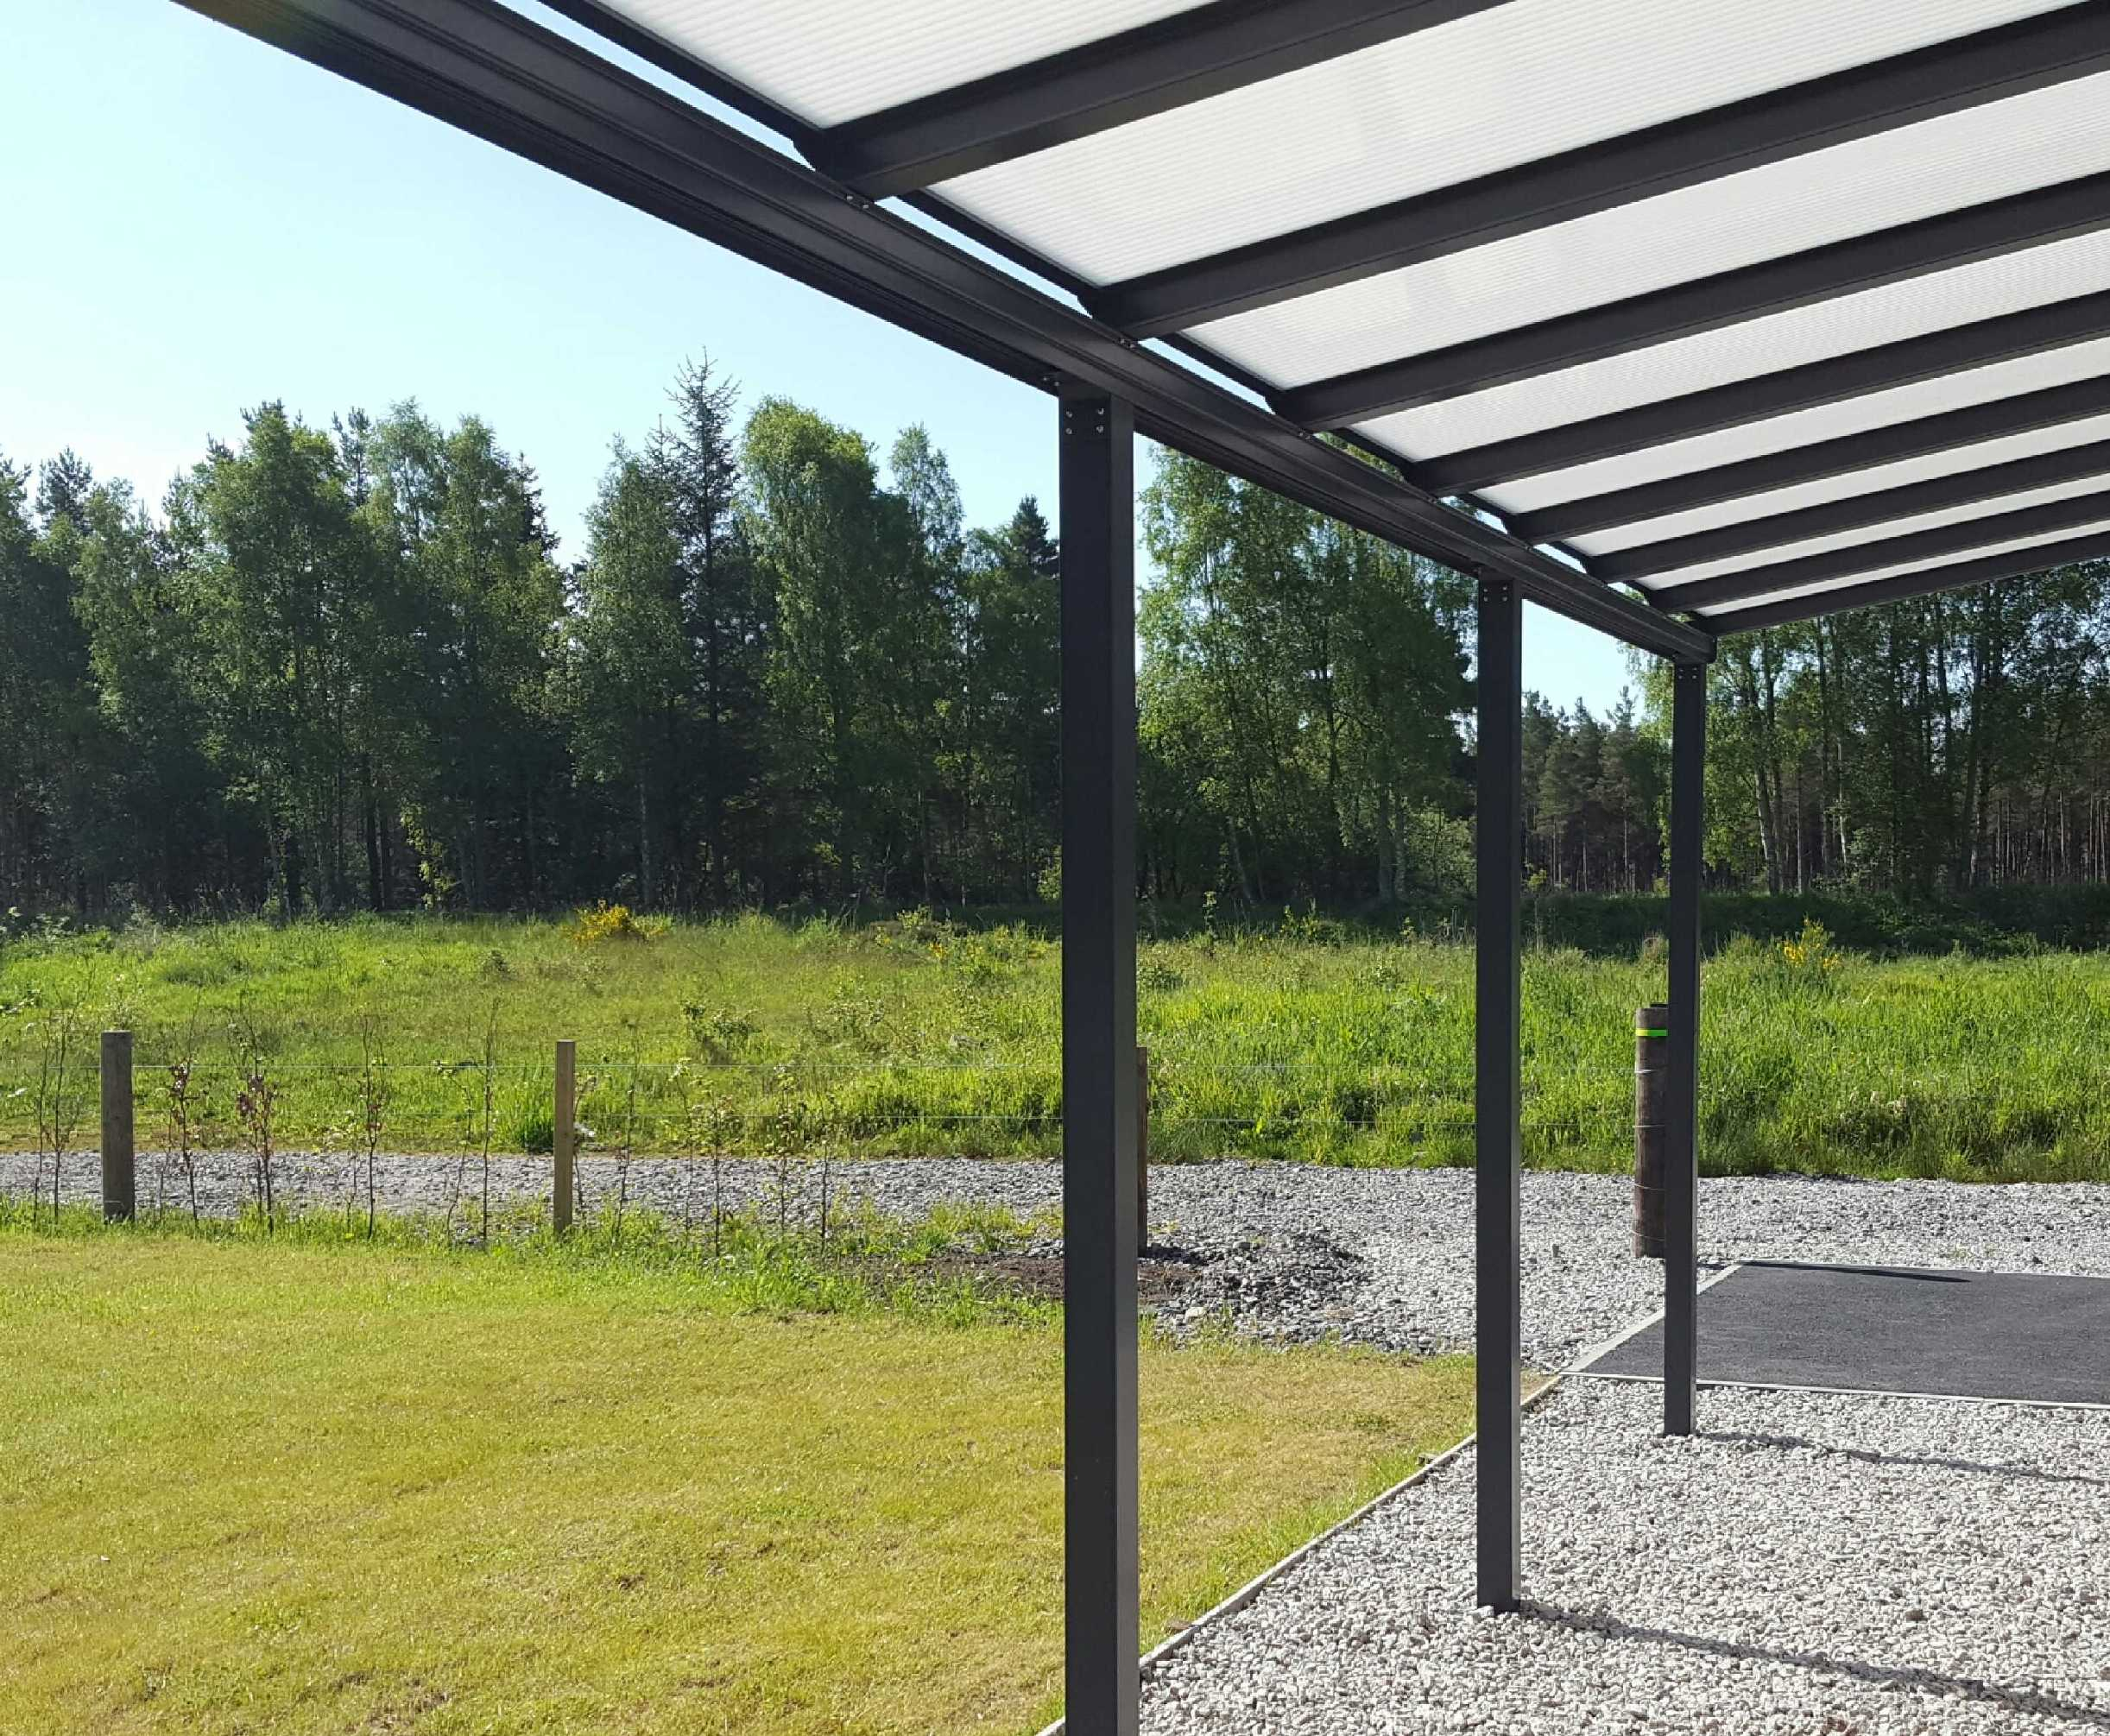 Omega Smart Lean-To Canopy, Anthracite Grey, 16mm Polycarbonate Glazing - 12.0m (W) x 3.0m (P), (5) Supporting Posts